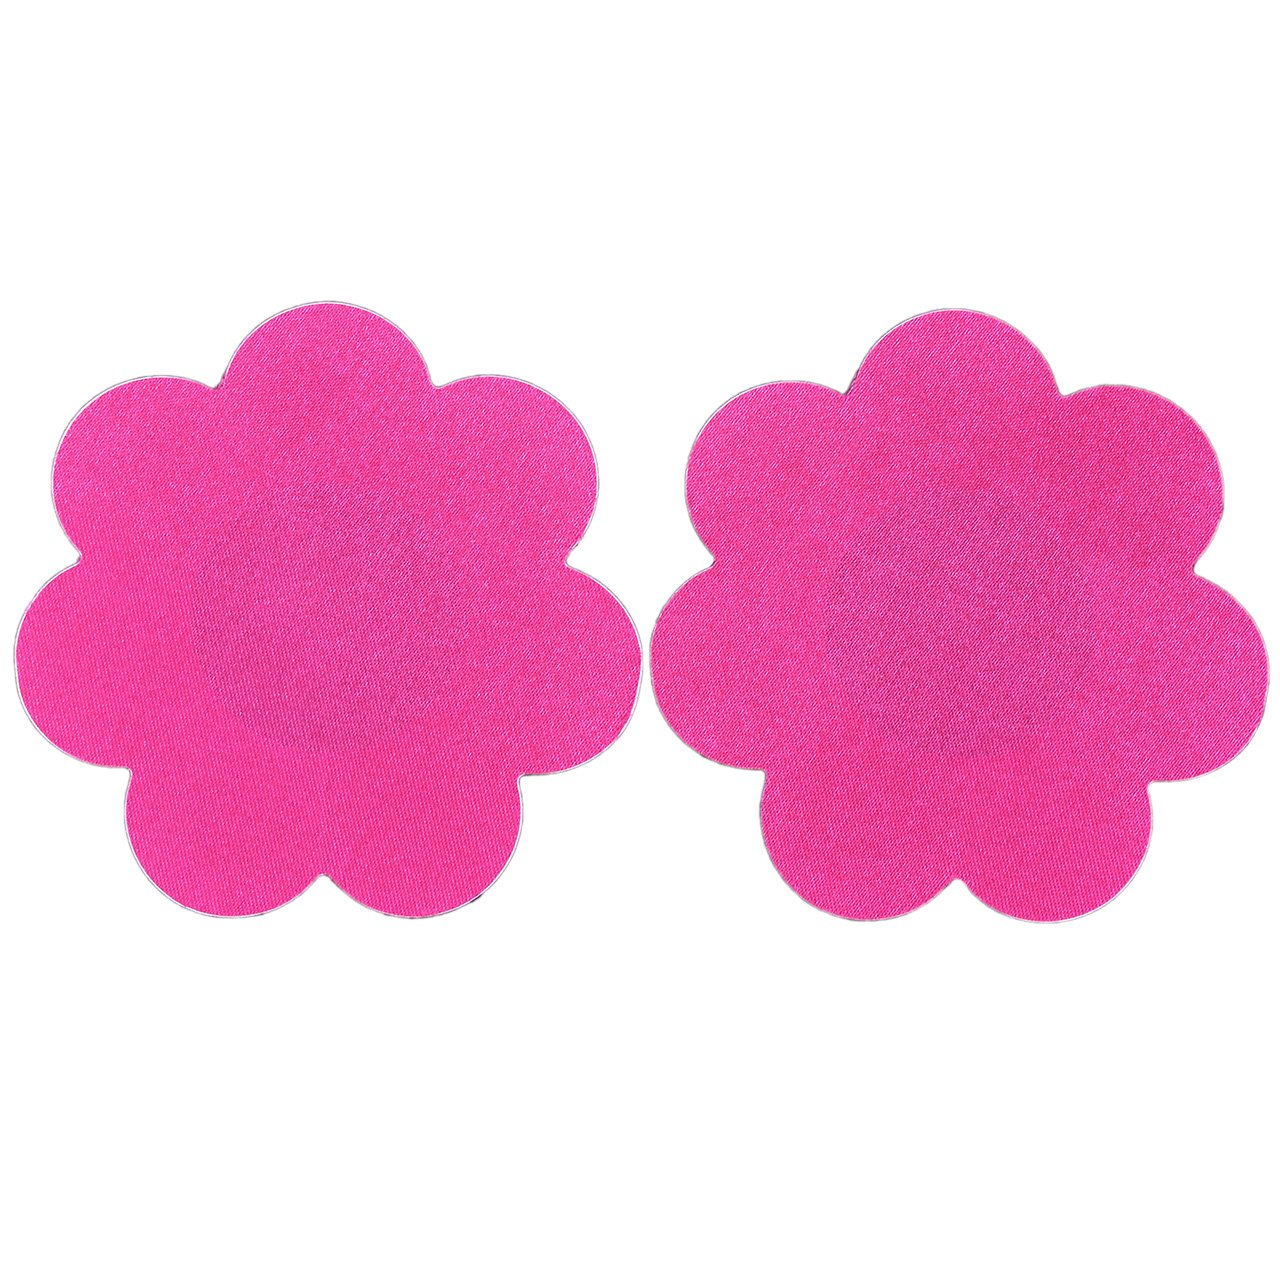 CHIC DIARY 10Pairs Flower Shape Self Adhesive Pasties Disposable Nipple Cover Sticker 13Colors QQUK00389